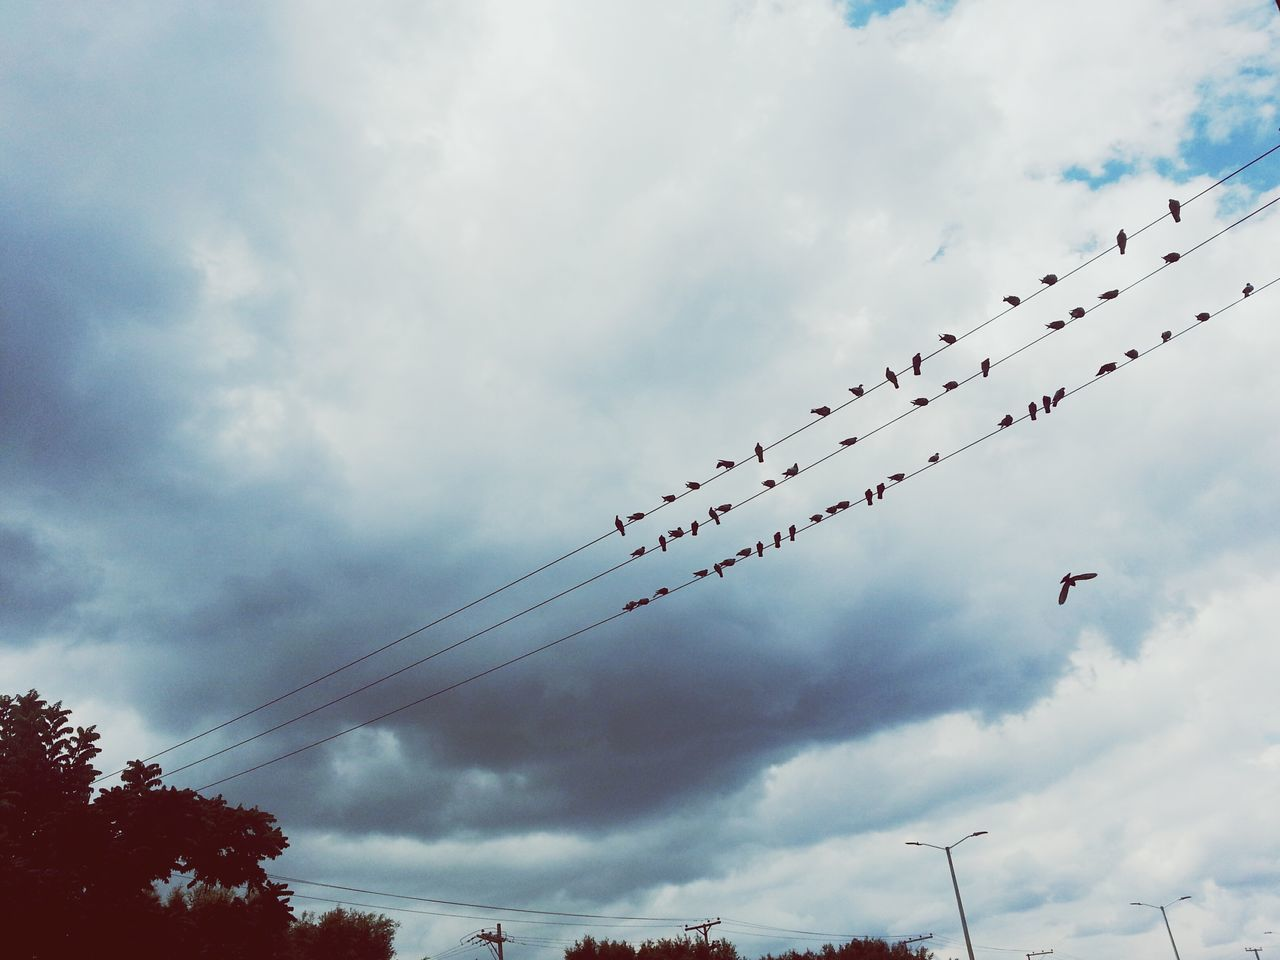 Low Angle View Of Birds Perching On Power Line Against Sky